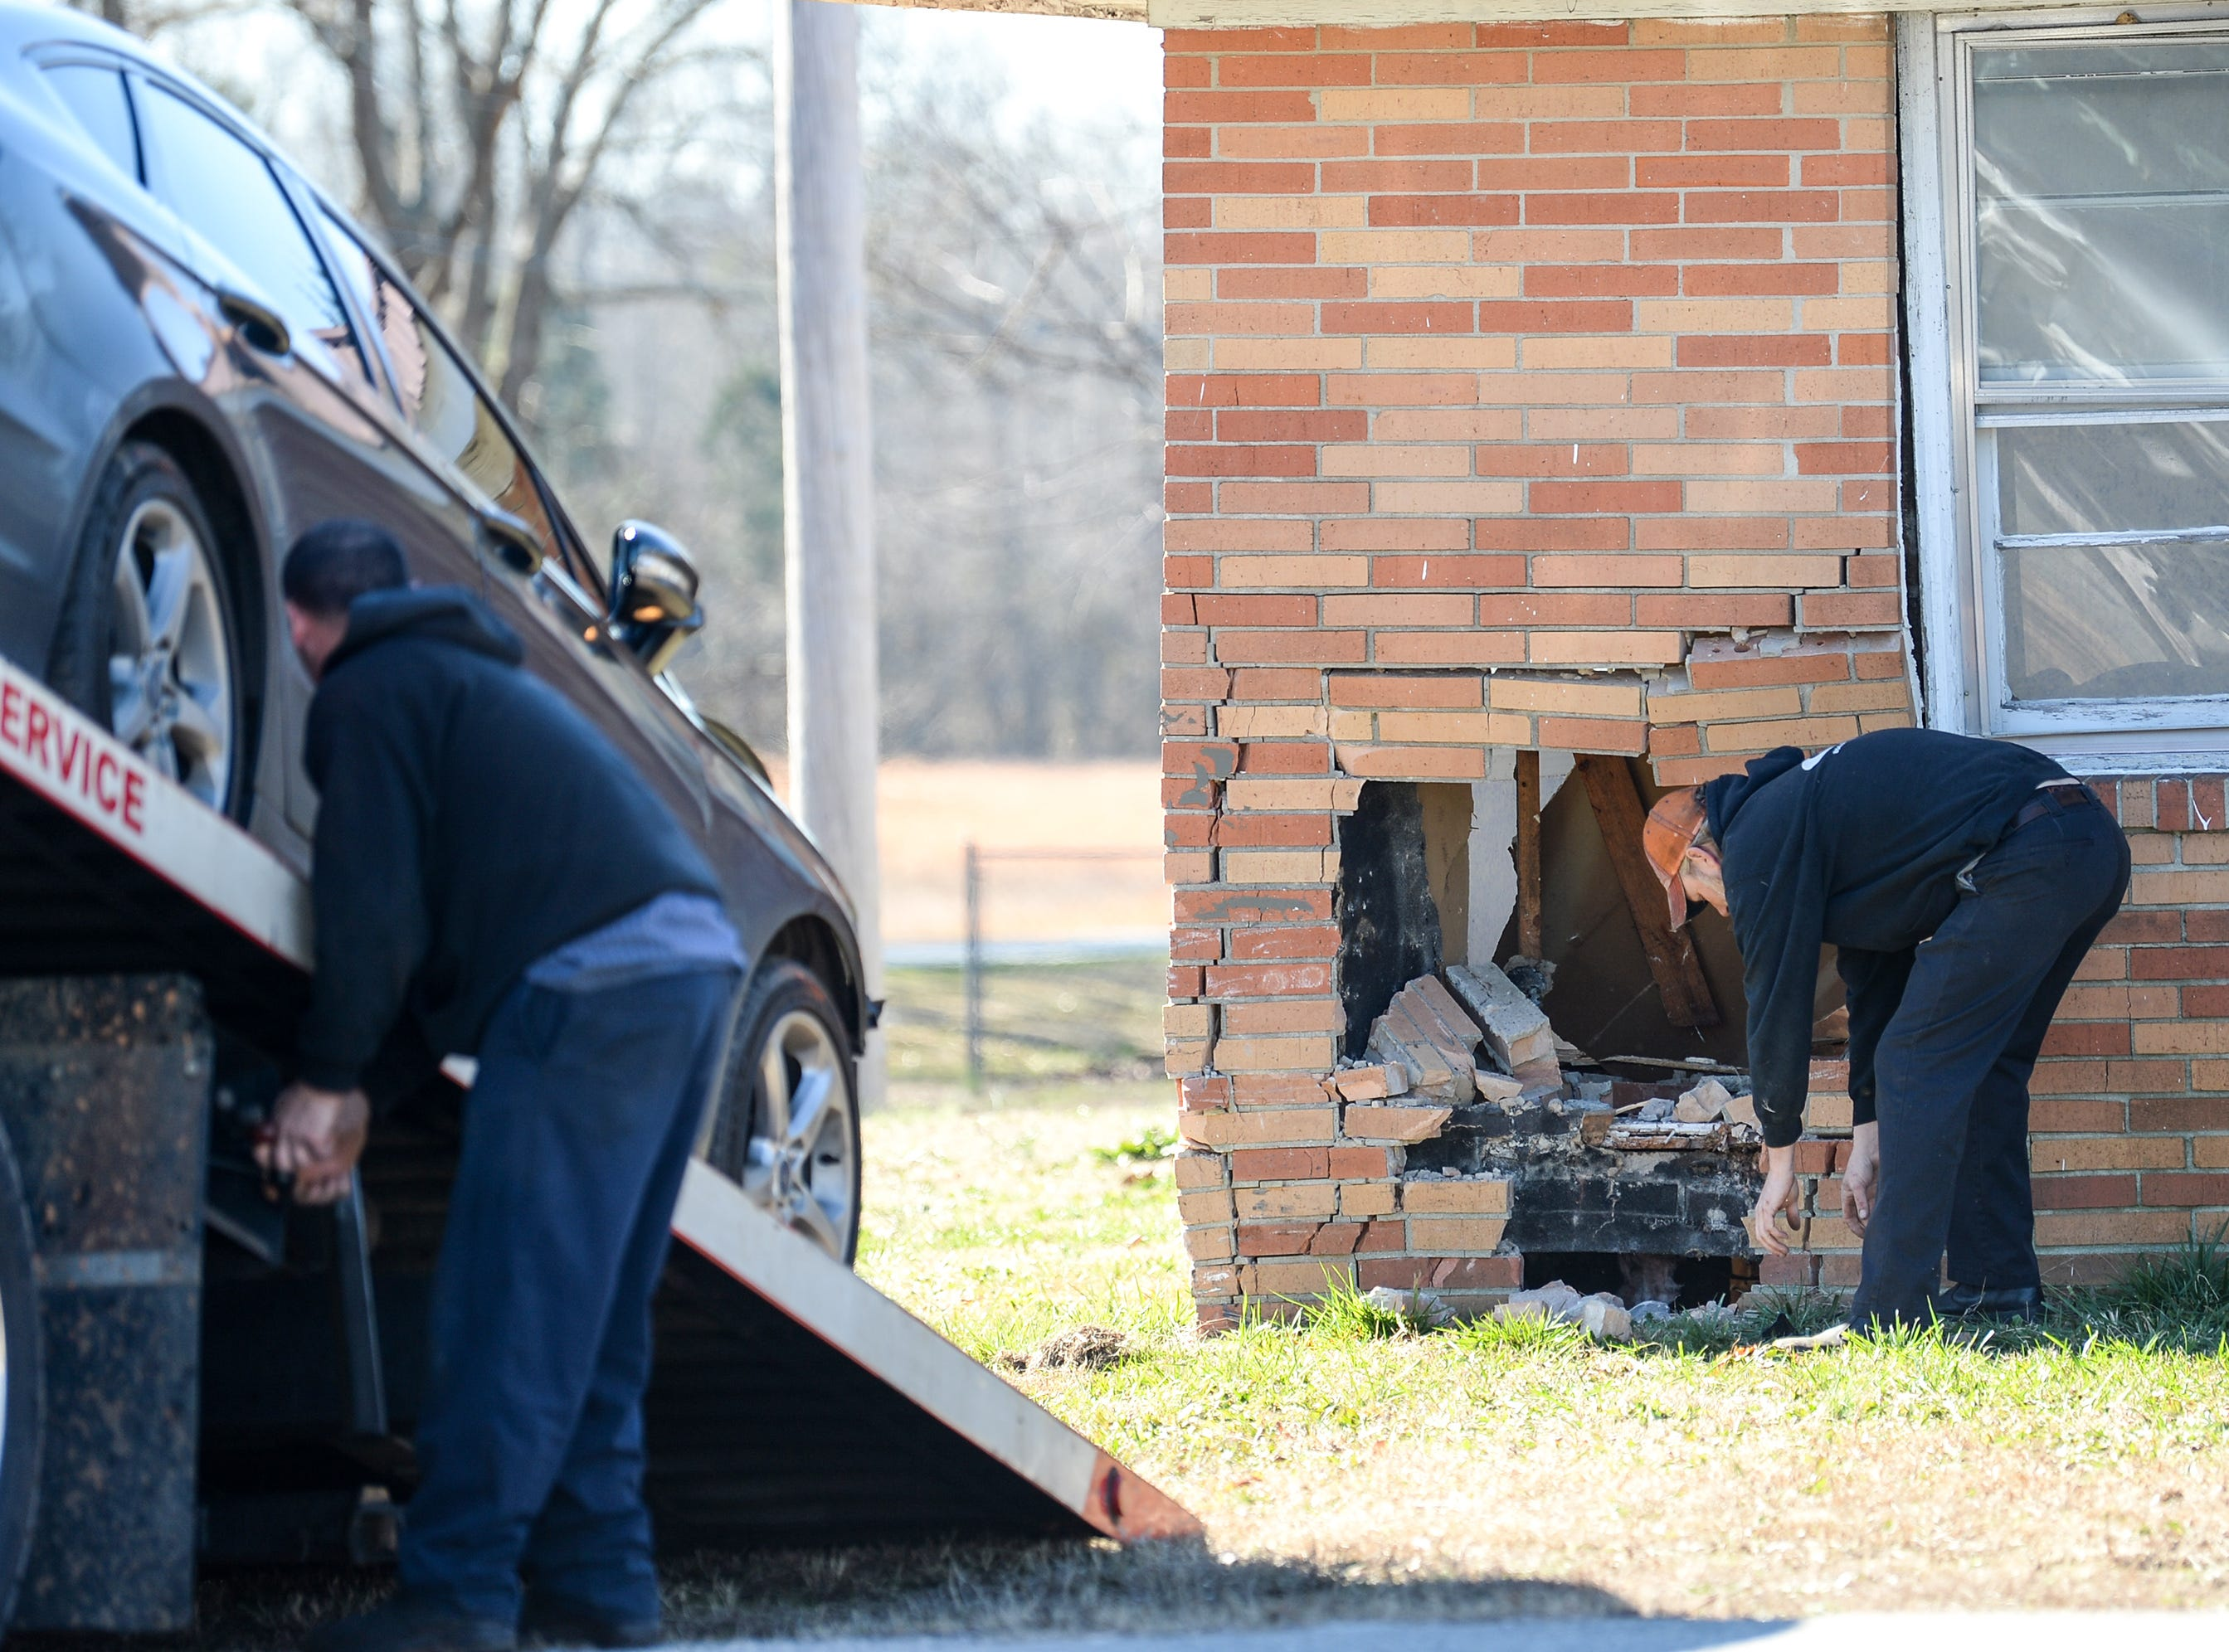 H & H Towing Service of Pelzer picks up pieces after a black Ford Fusion crashed into the brick of the home on 1700 Anderson Parkway at Vernon Street in Williamston Wednesday. Firemen at the scene said the man driving appeared to drive through the American Legion Post 121 parking lot before stopping a three-foot square on the corner of the house before being taken to Greenville for medical care.